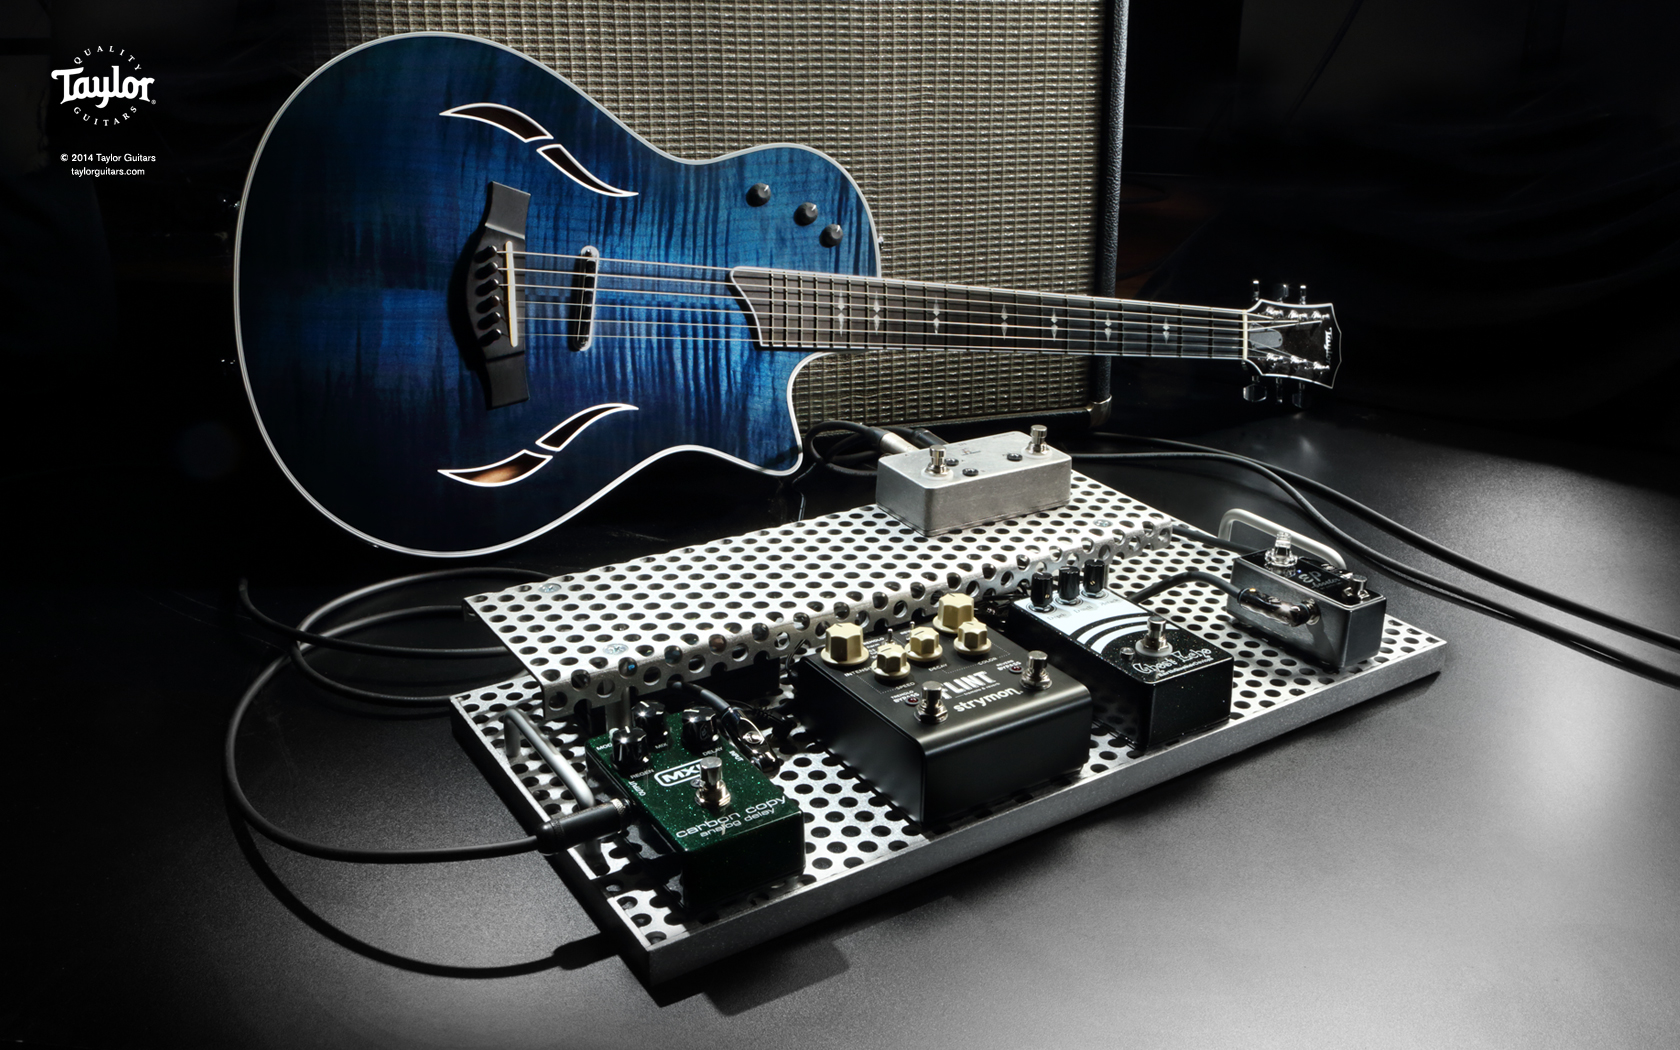 T5z Pro Sweepstakes Thank You Page Taylor Guitars